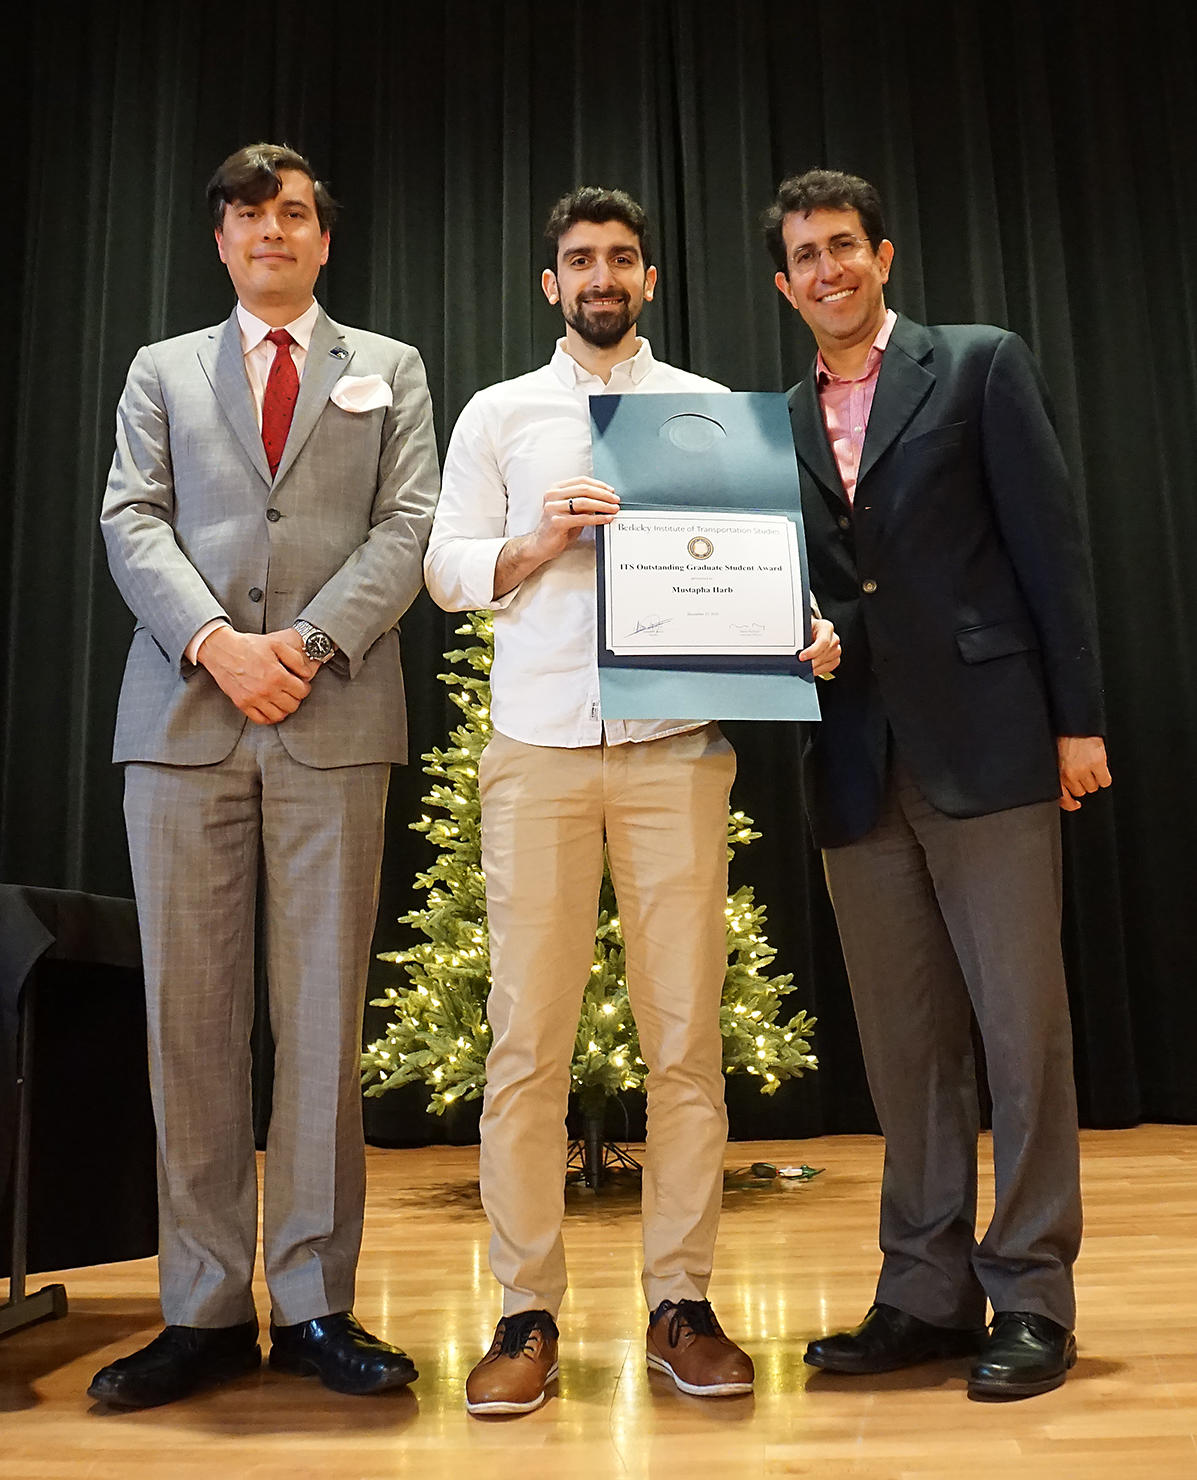 Harb ITS Outstanding Graduate Student Award